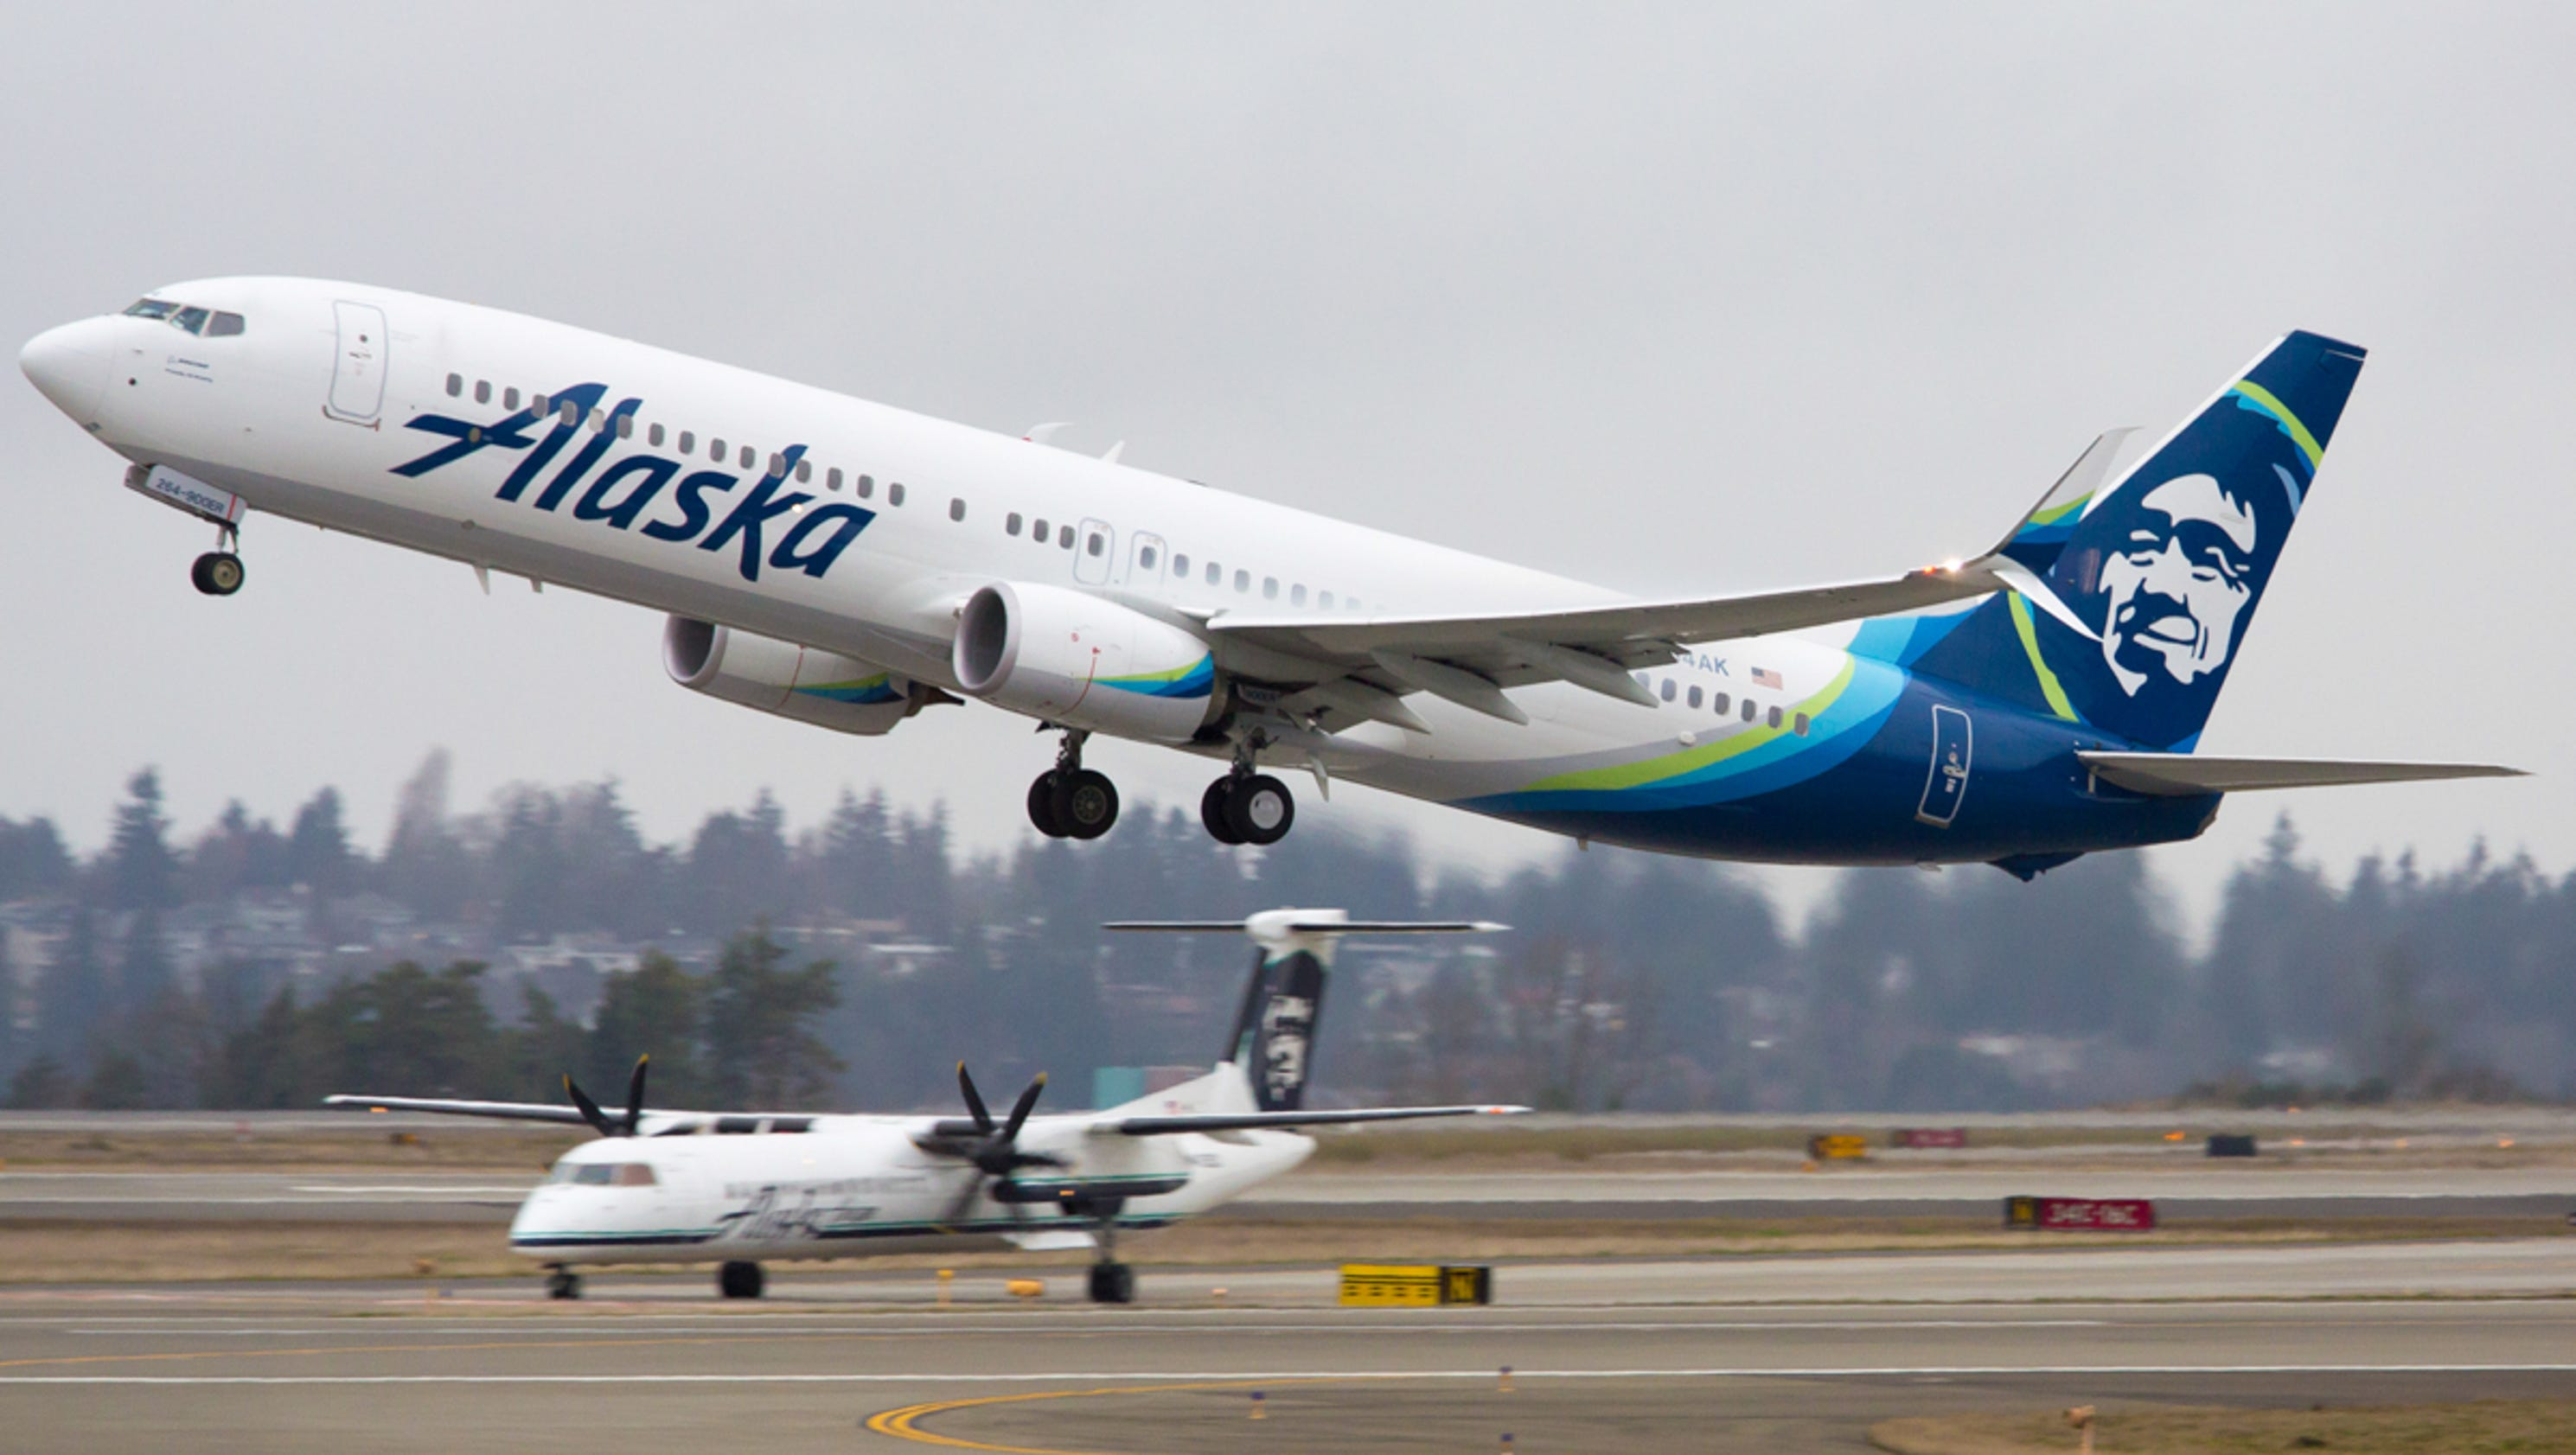 Alaska Airlines: Emotional support animal rules tightened